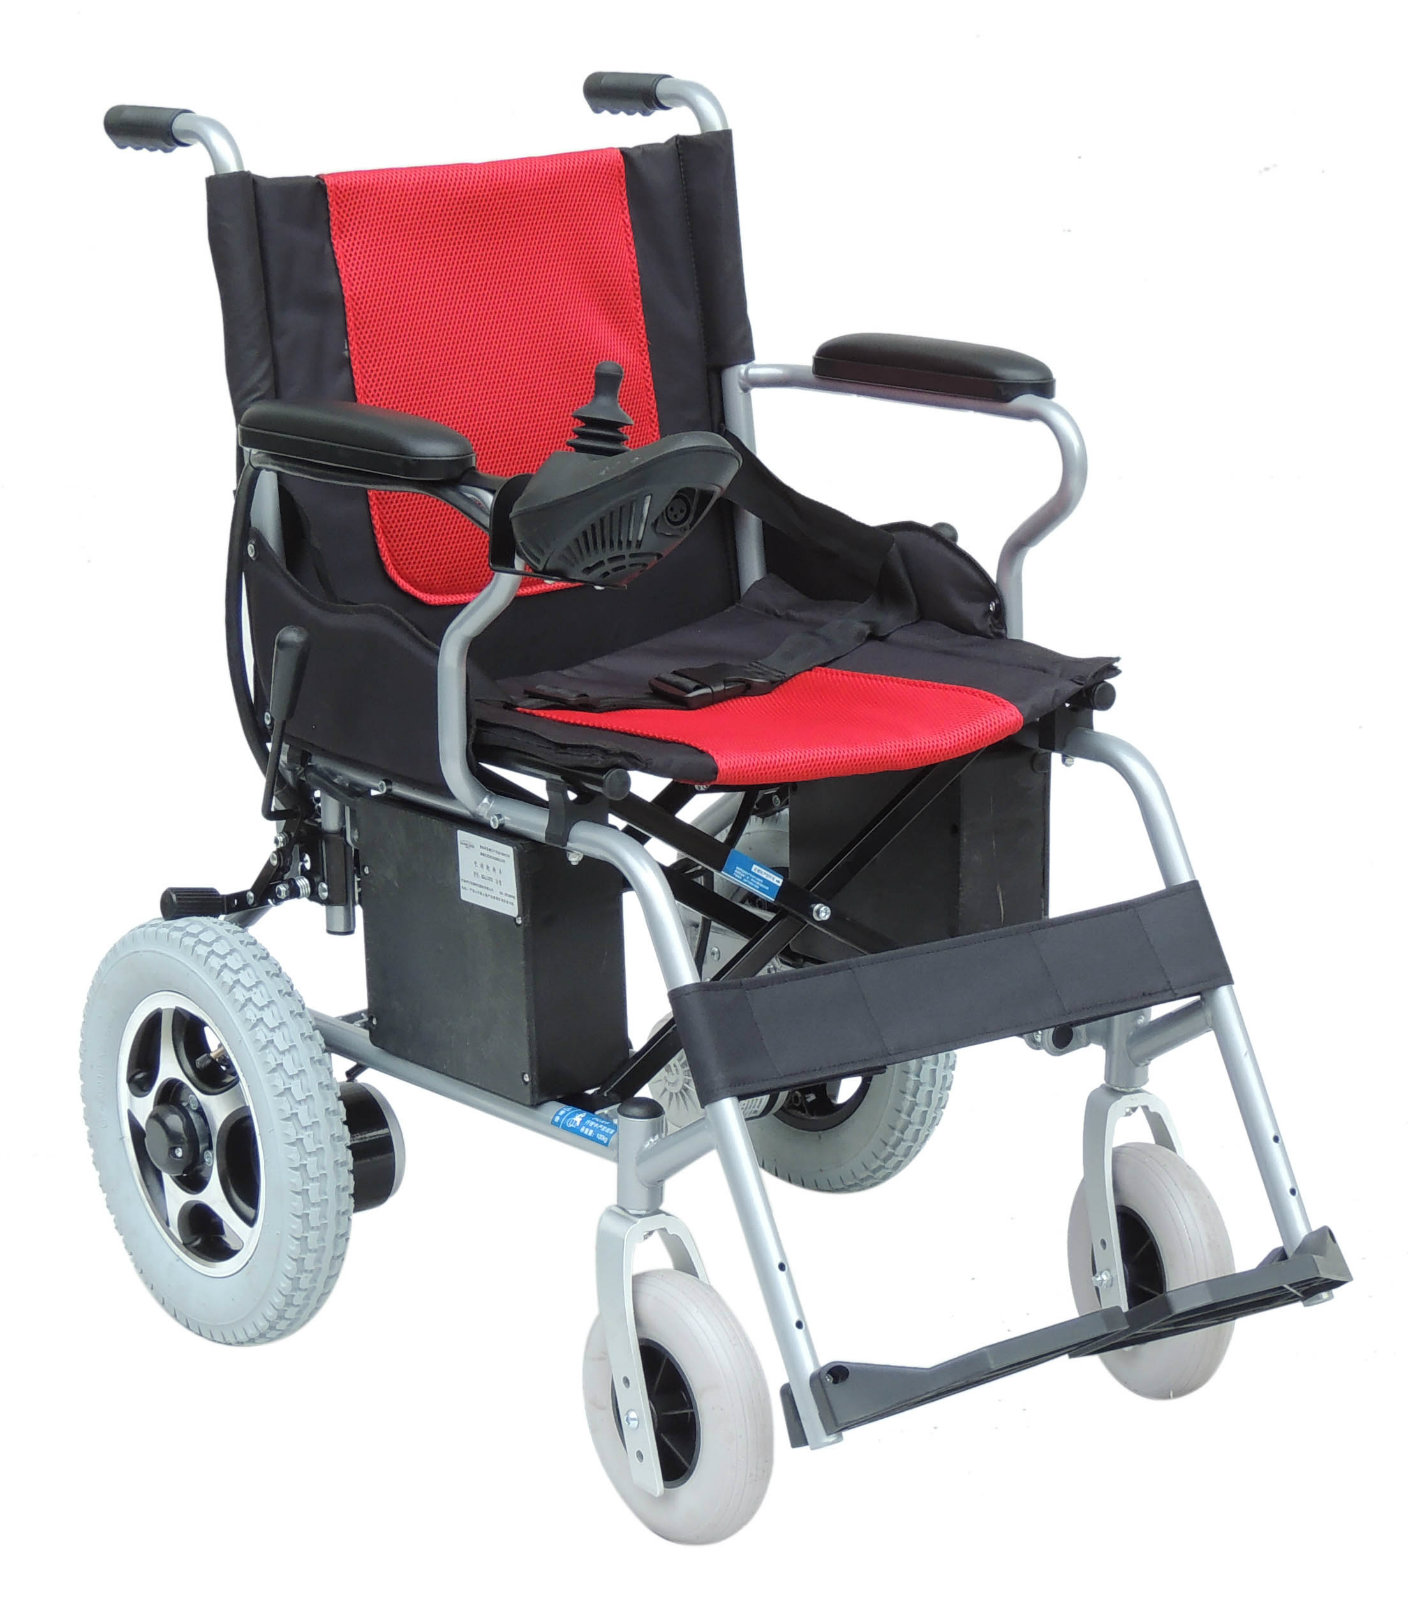 wheelchair gst swing chair for child buy electric sg ly 01000302 product online